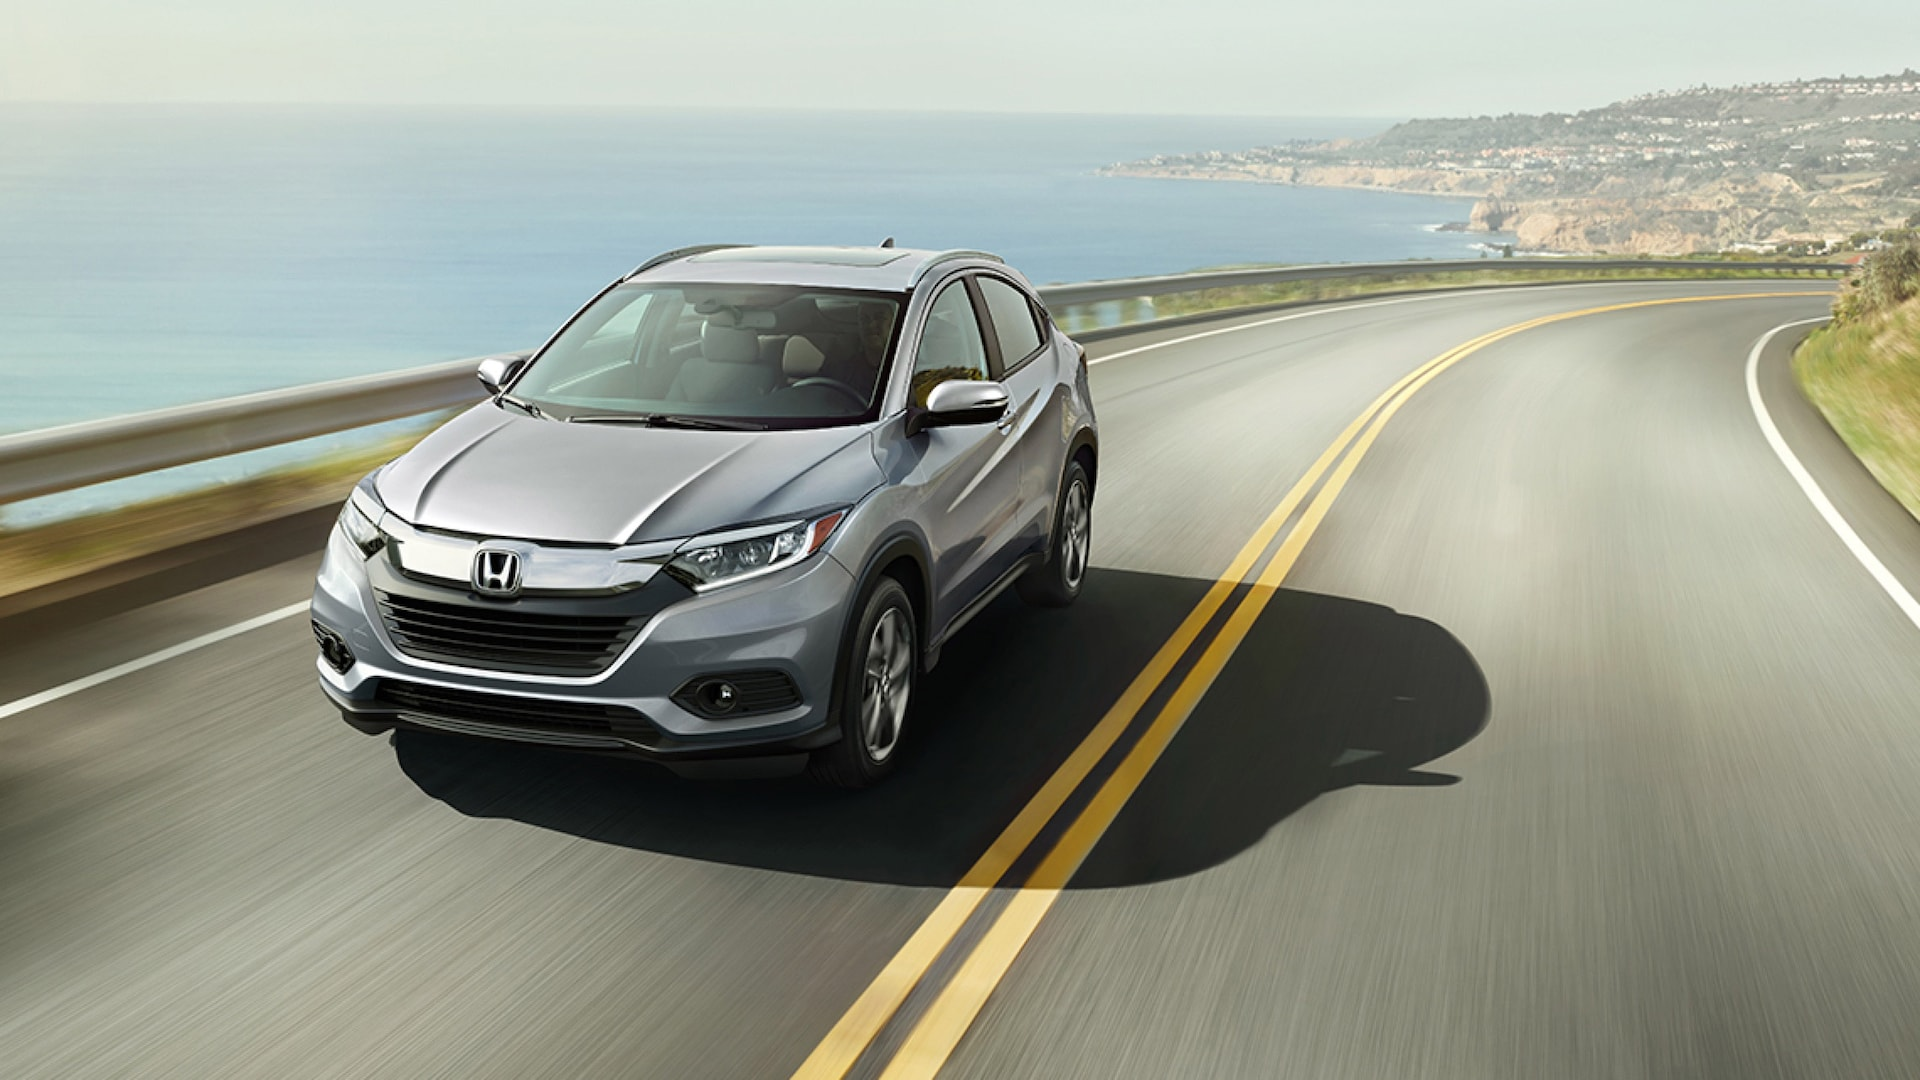 Front 3/4 driver-side view of the 2020 Honda HR-V EX-L in Lunar Silver Metallic driving on a highway overlooking an ocean.